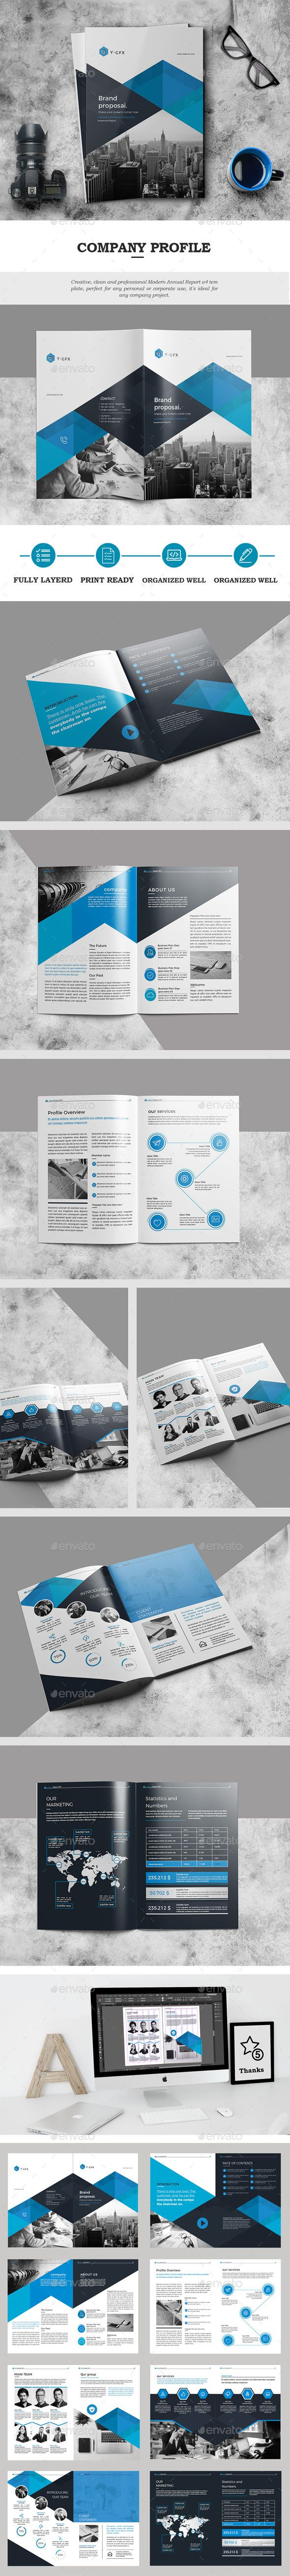 The Brochure Design Template  - Catalogs Brochures Design Template InDesign INDD. Download here: https://graphicriver.net/item/the-brochure/18840324?ref=yinkira